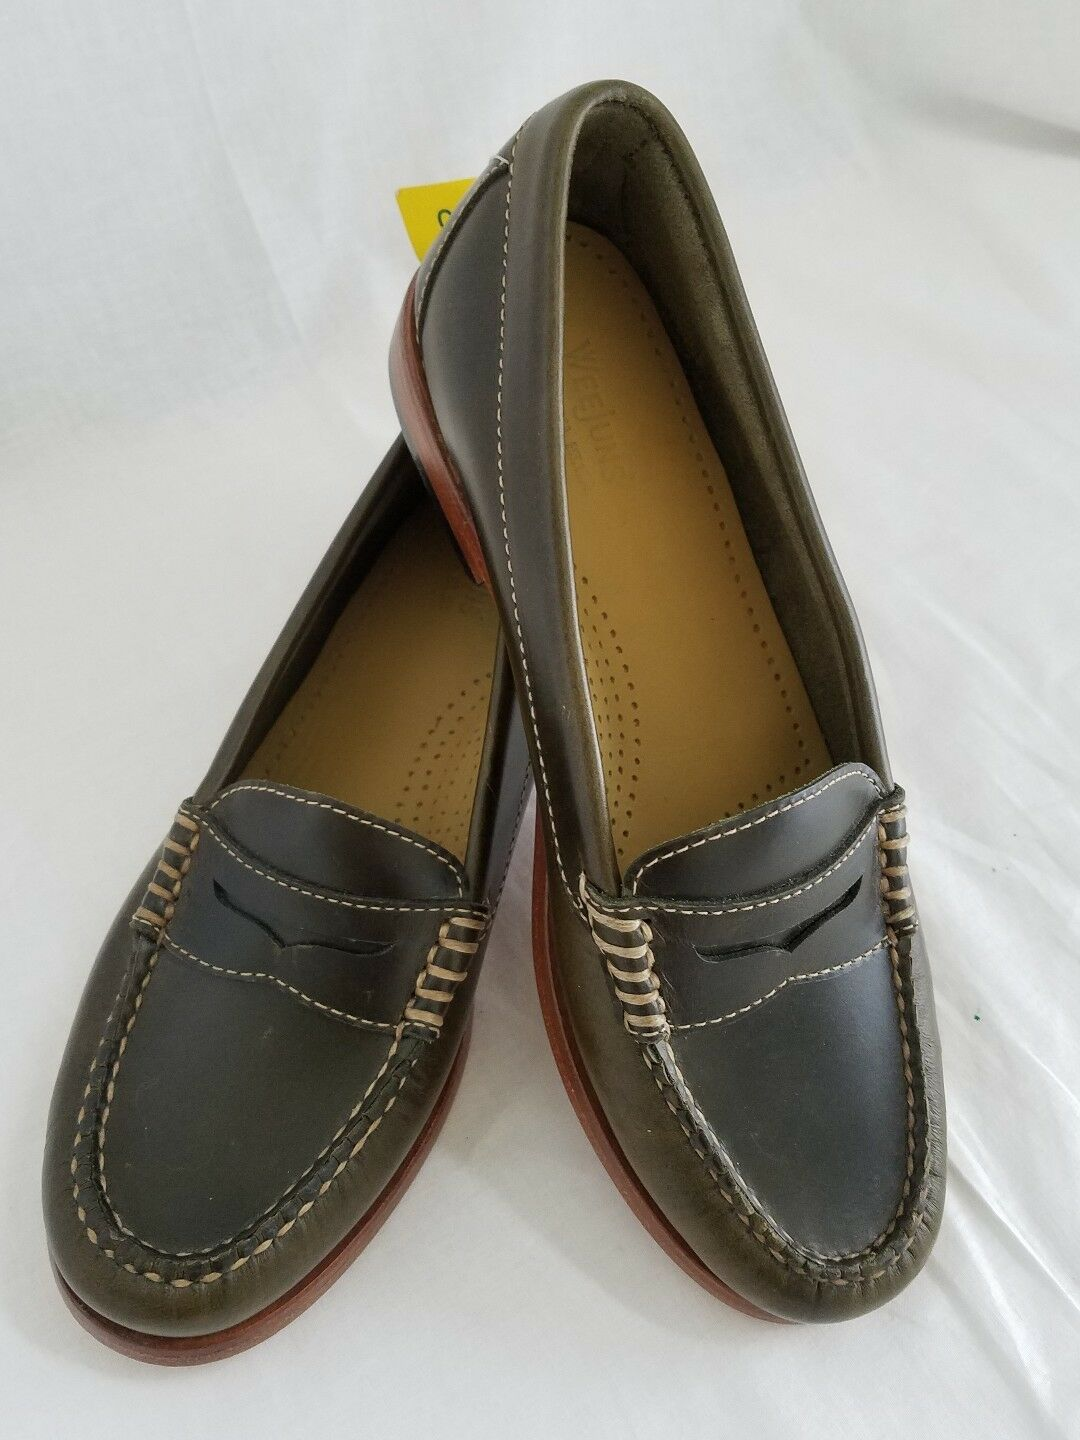 Weejuns NWOB Handcrafted Leather Shadow Green Womens Loafers, Size 5.5M